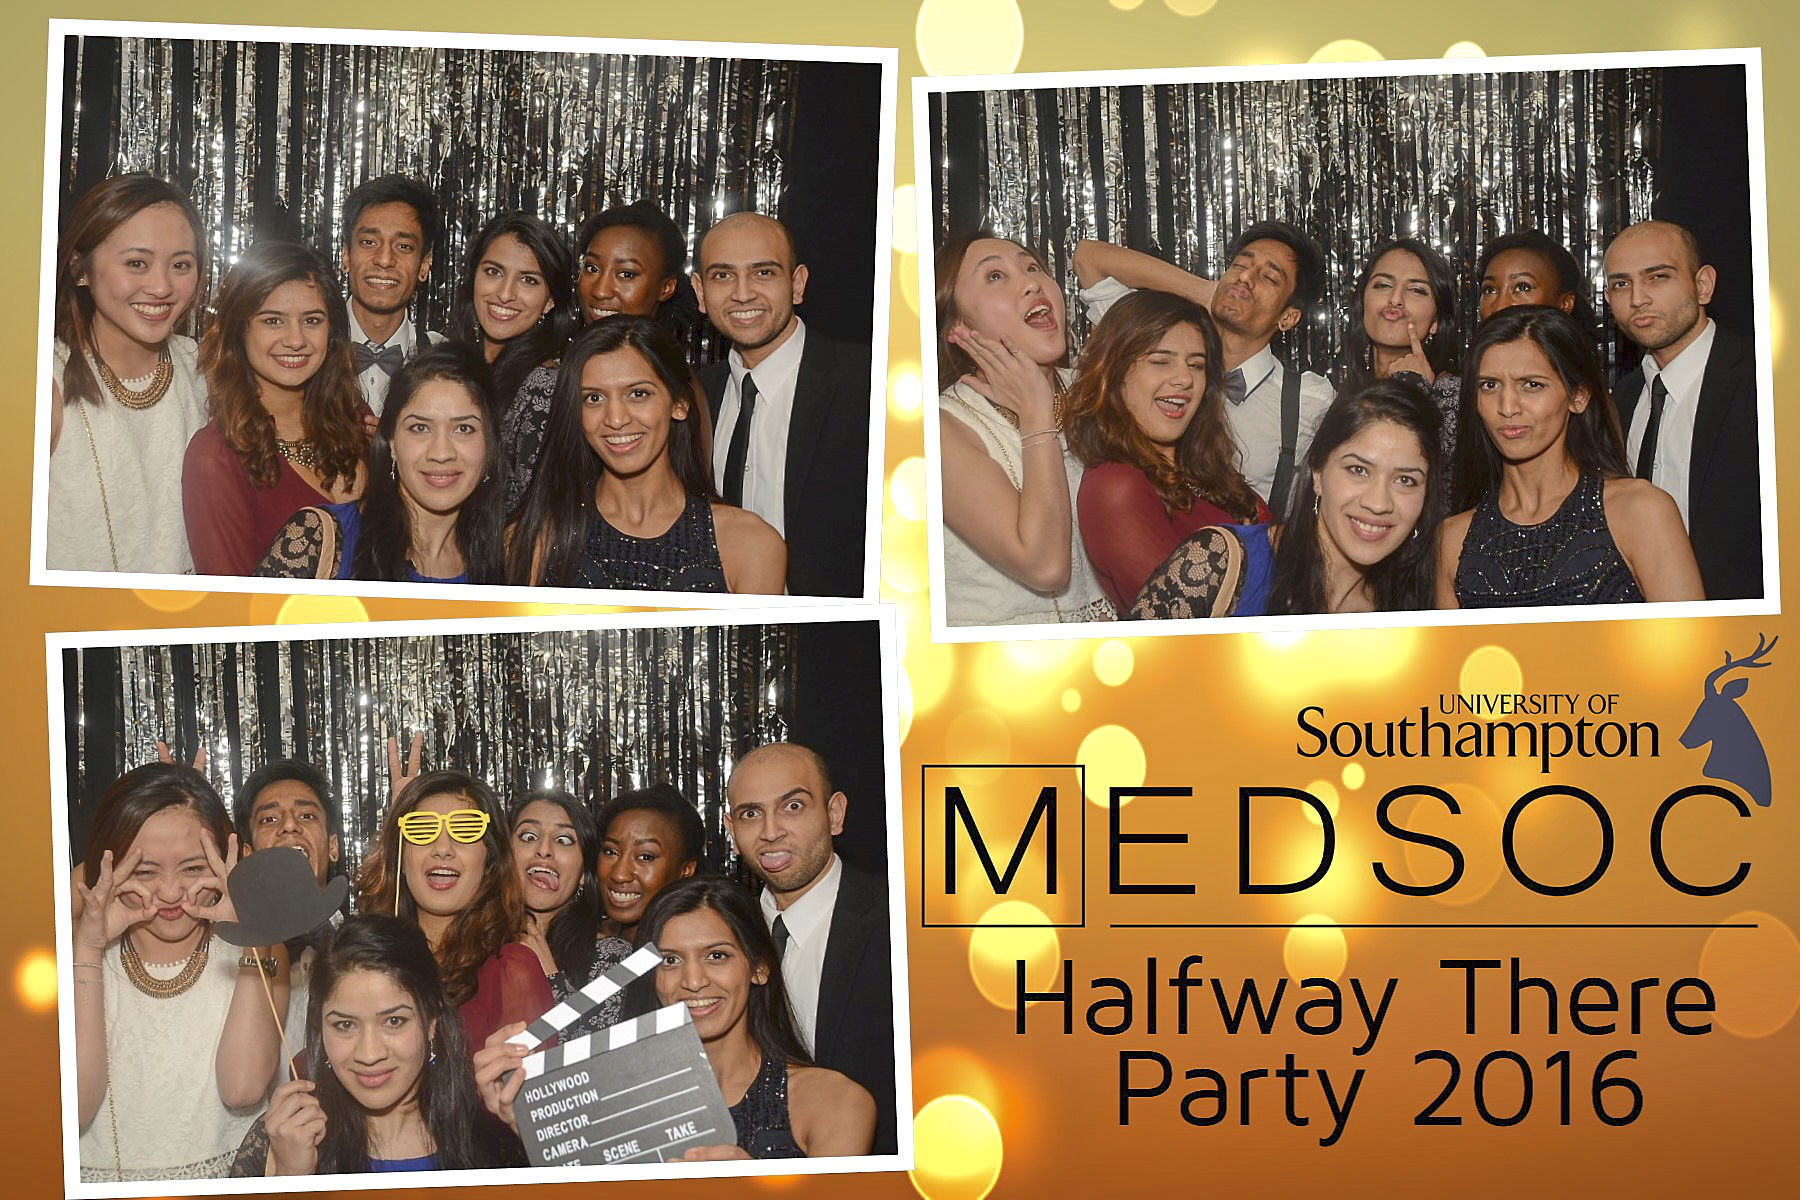 MedSoc Halfway There Party 2016 DS000244.jpg